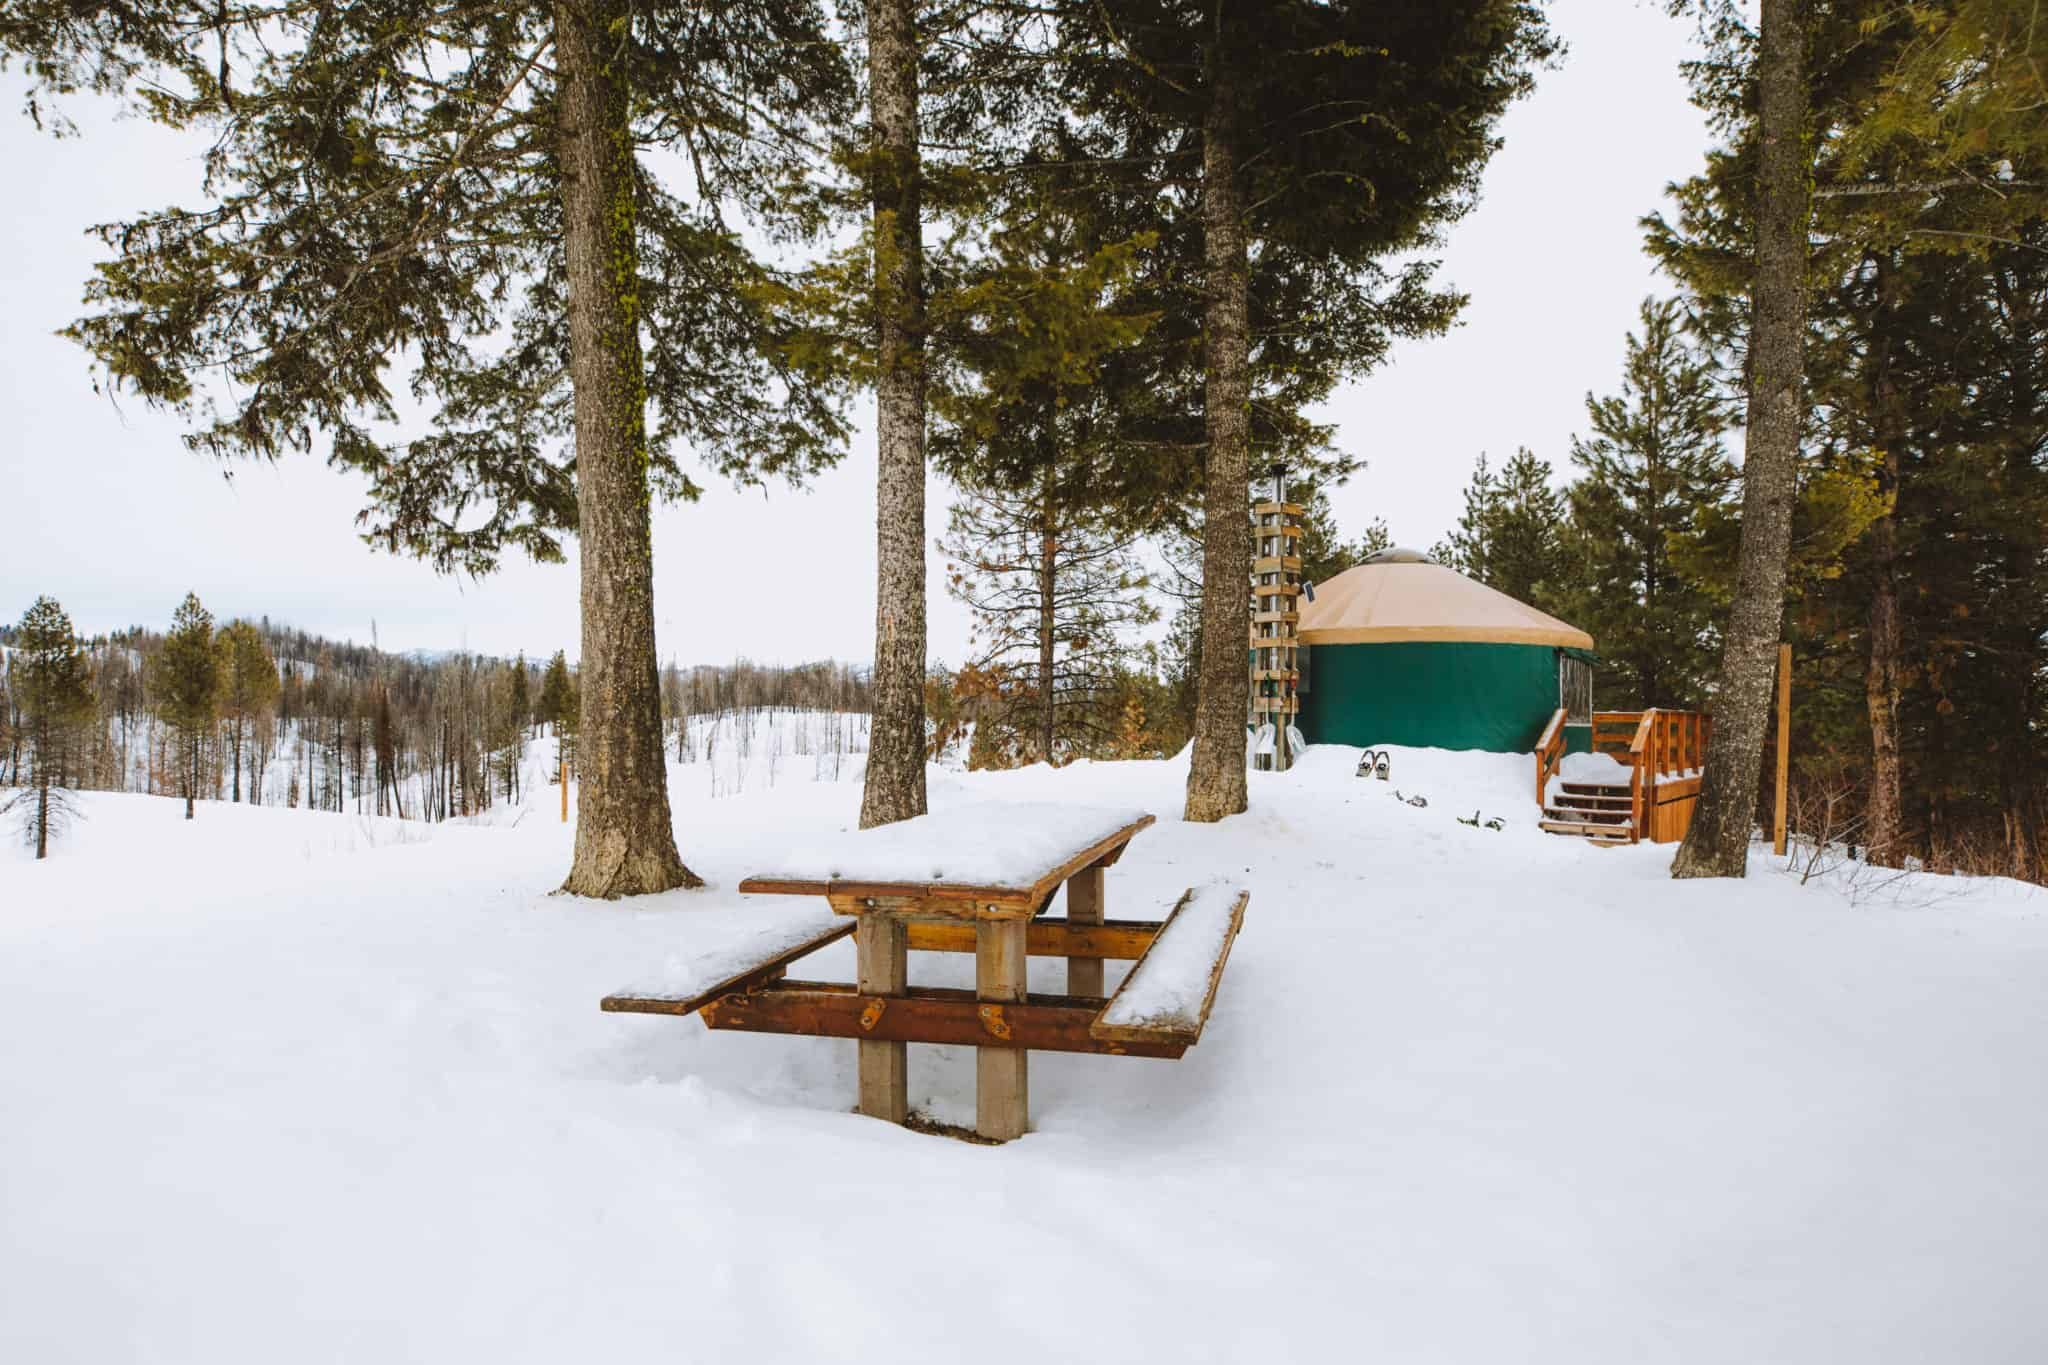 Idaho City yurt picnic table